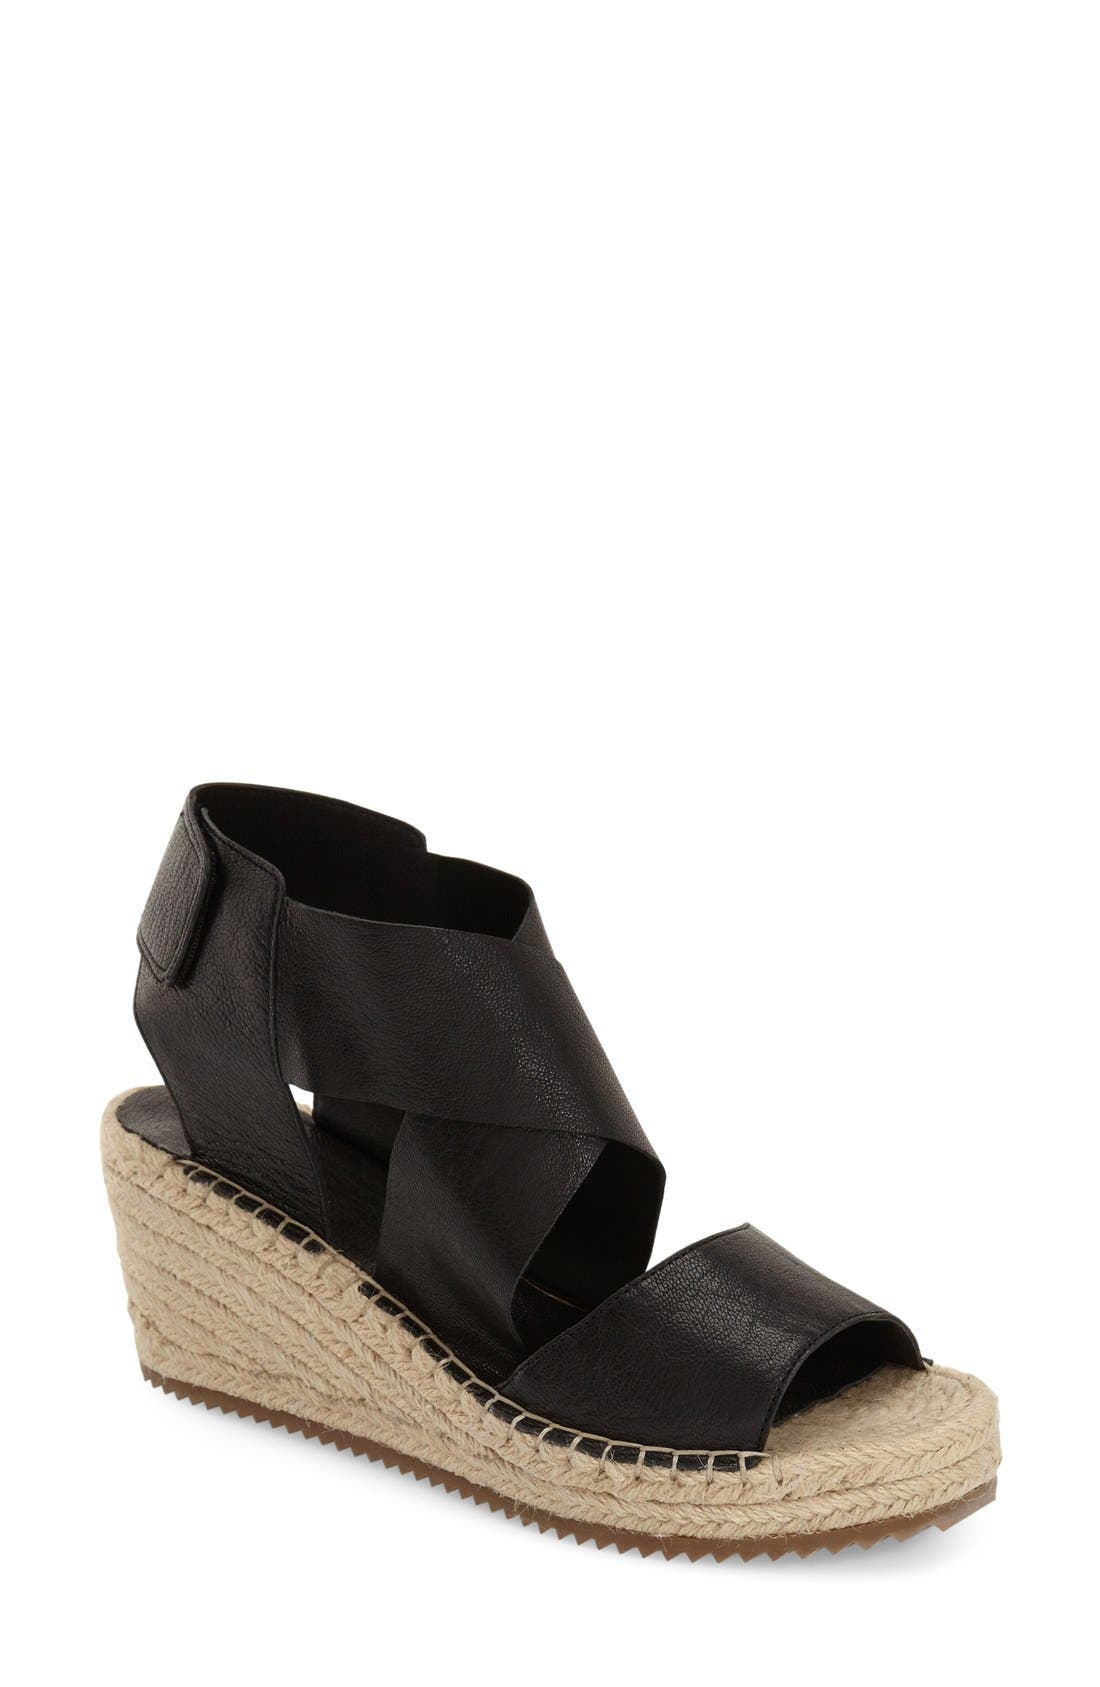 'Willow' Espadrille Wedge Sandal,                             Main thumbnail 1, color,                             001